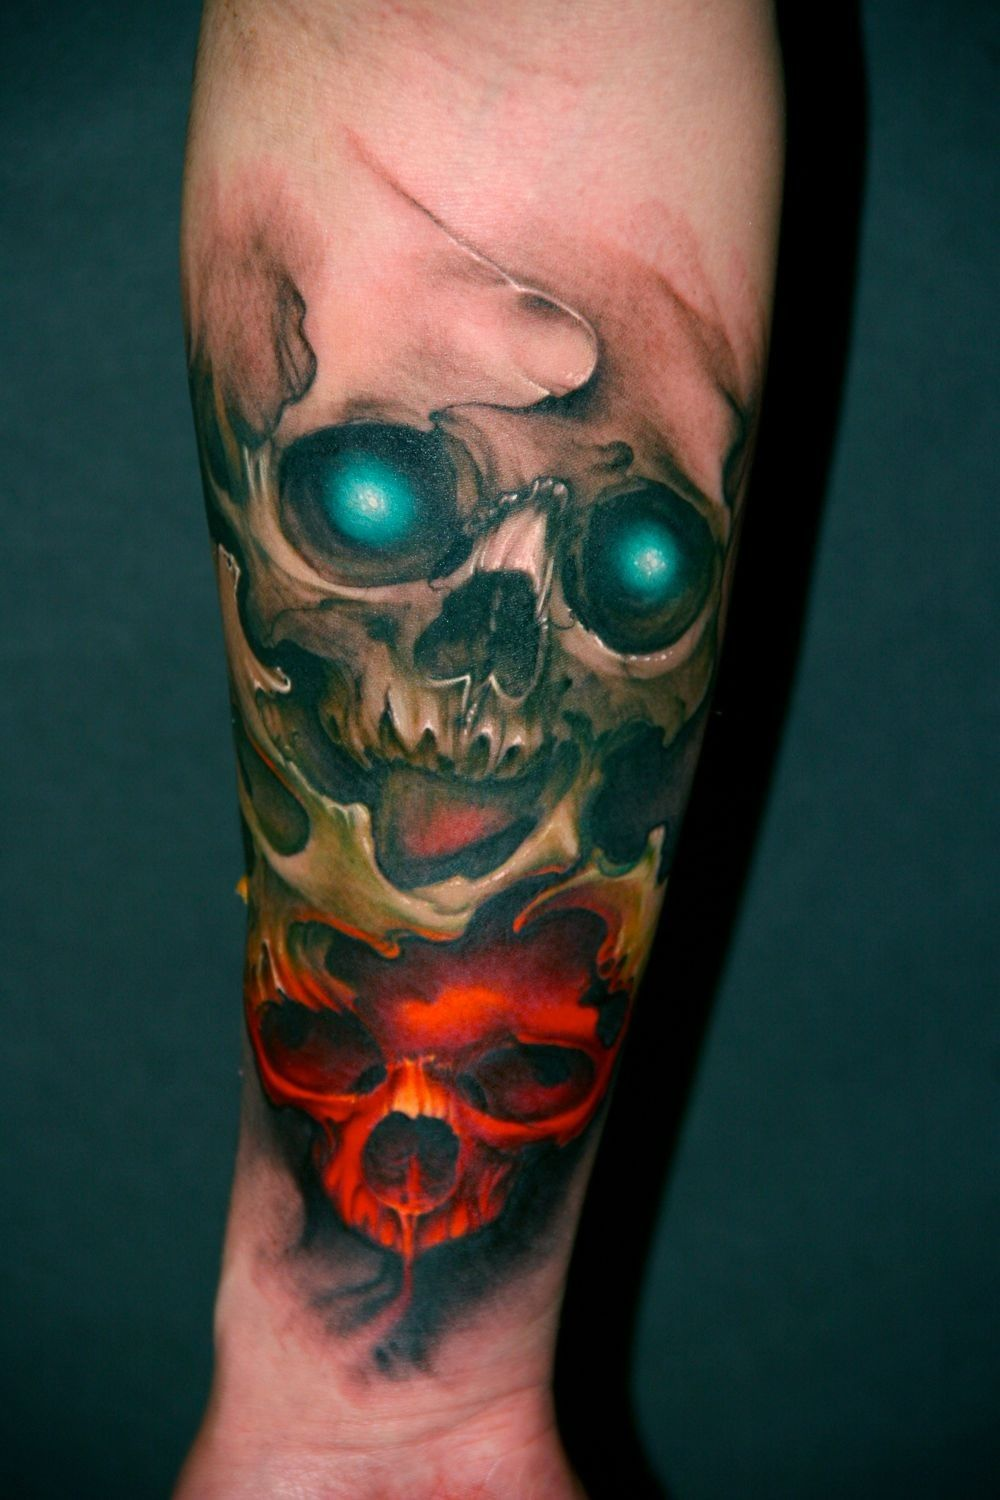 e3284f69e Skull Tattoo Designs And Ideas-Skull Tattoo Meanings And Pictures ...